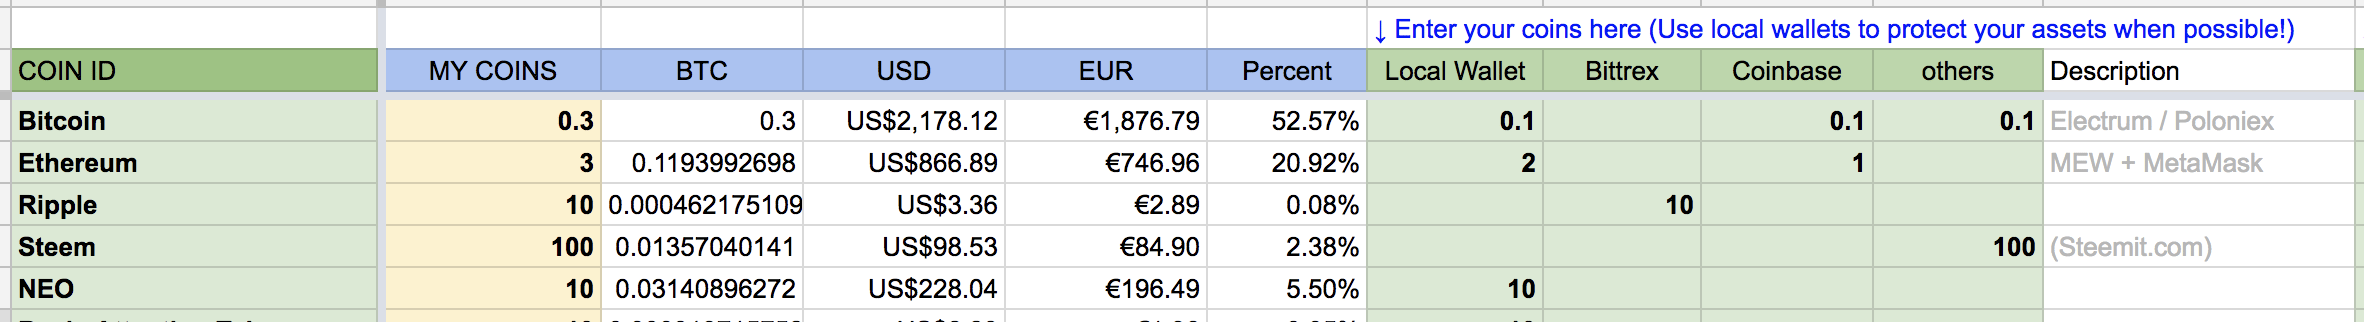 google sheets cryptocurrency price